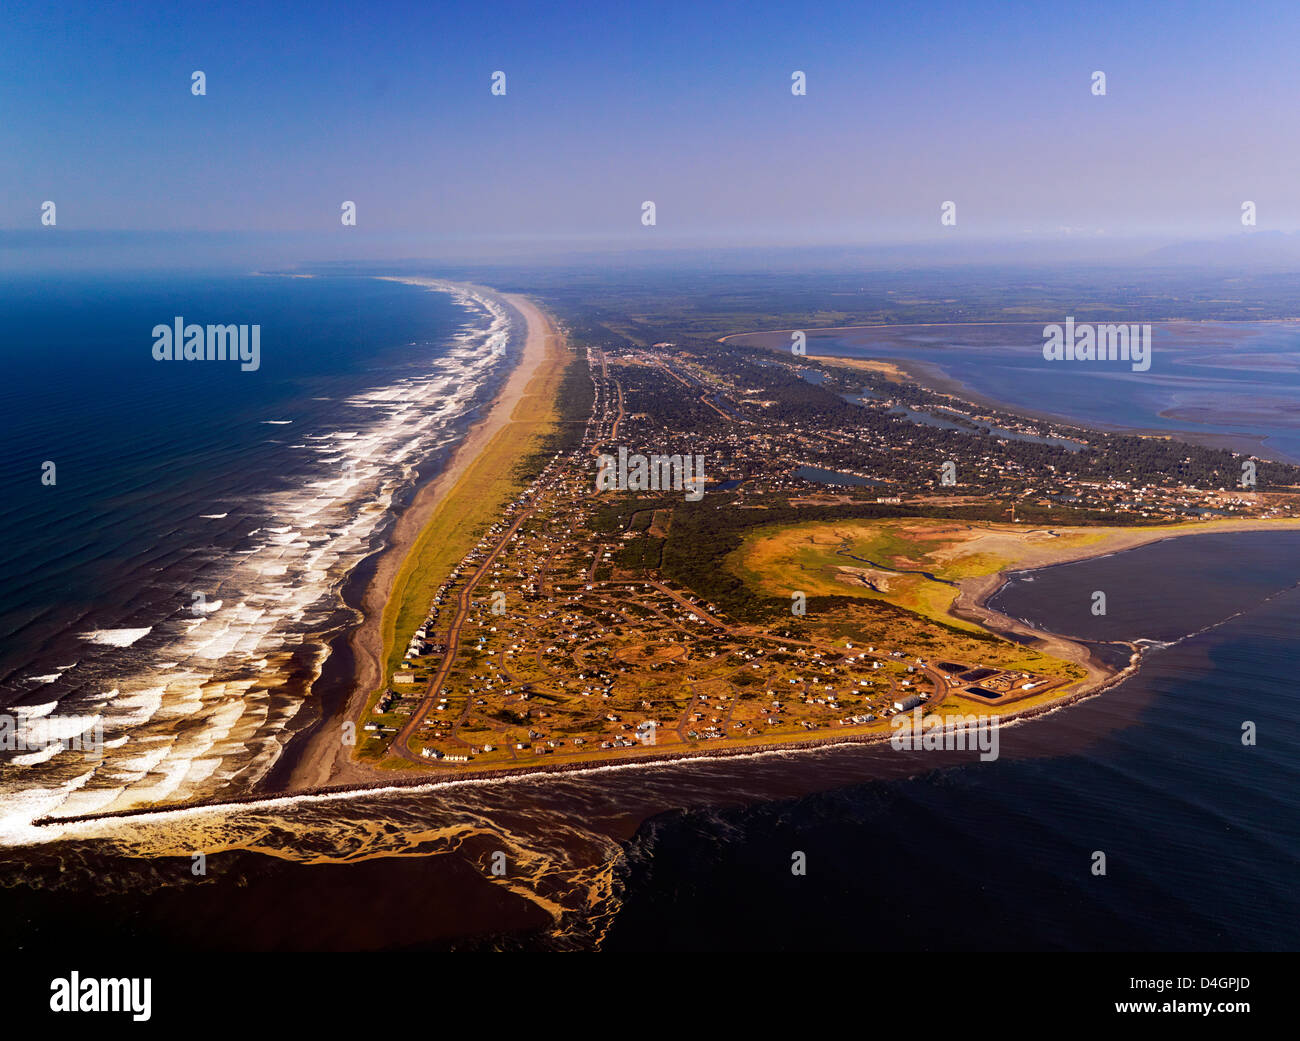 An aerial photo of the community of Ocean Shores on the Washington Coast - Stock Image